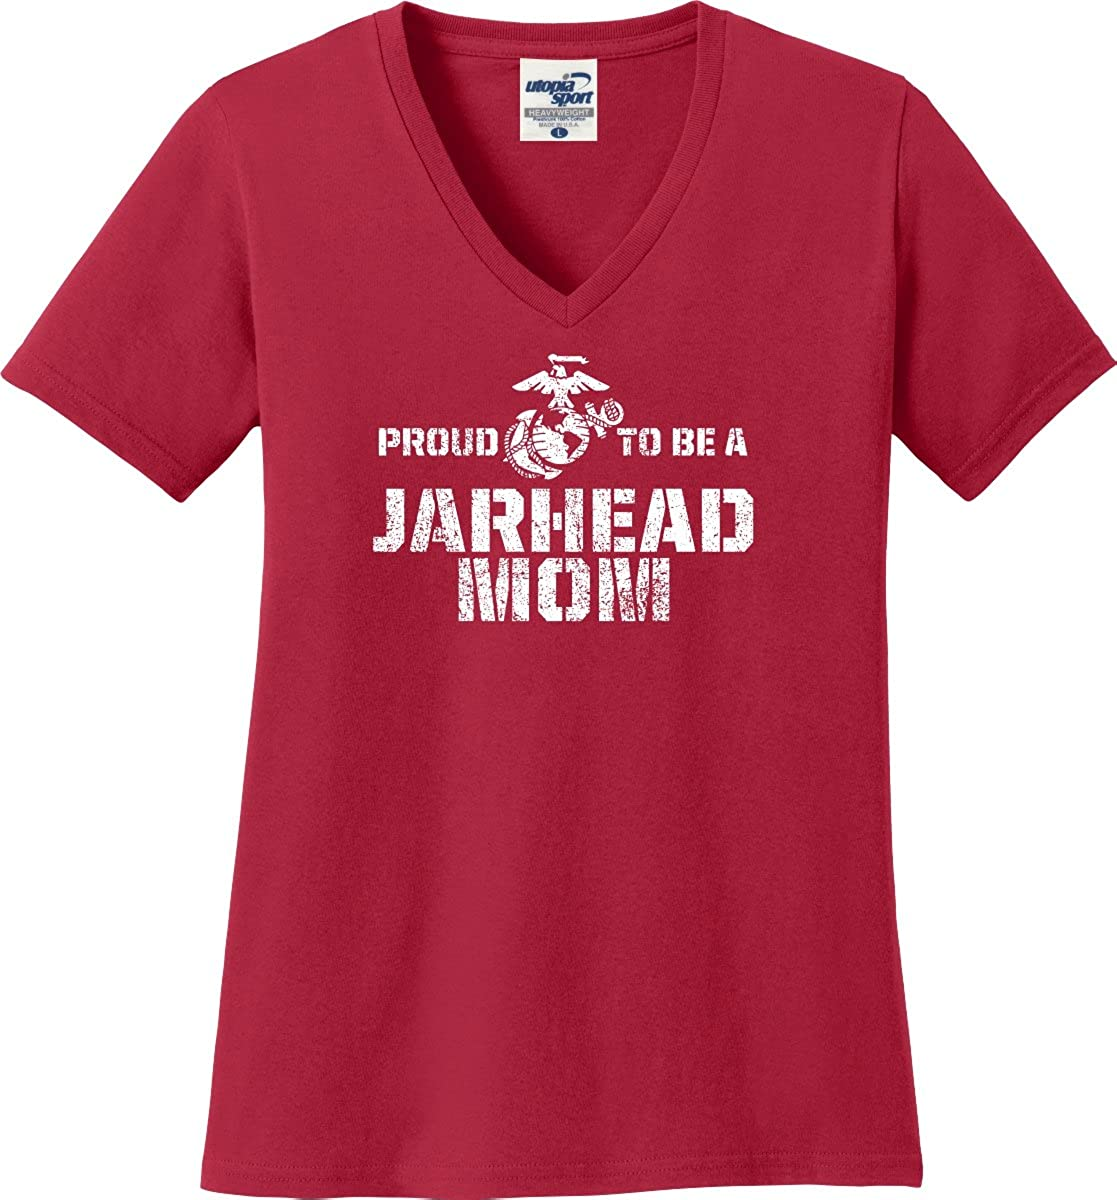 Proud to Be A Jarhead Marine Mom V-Necks